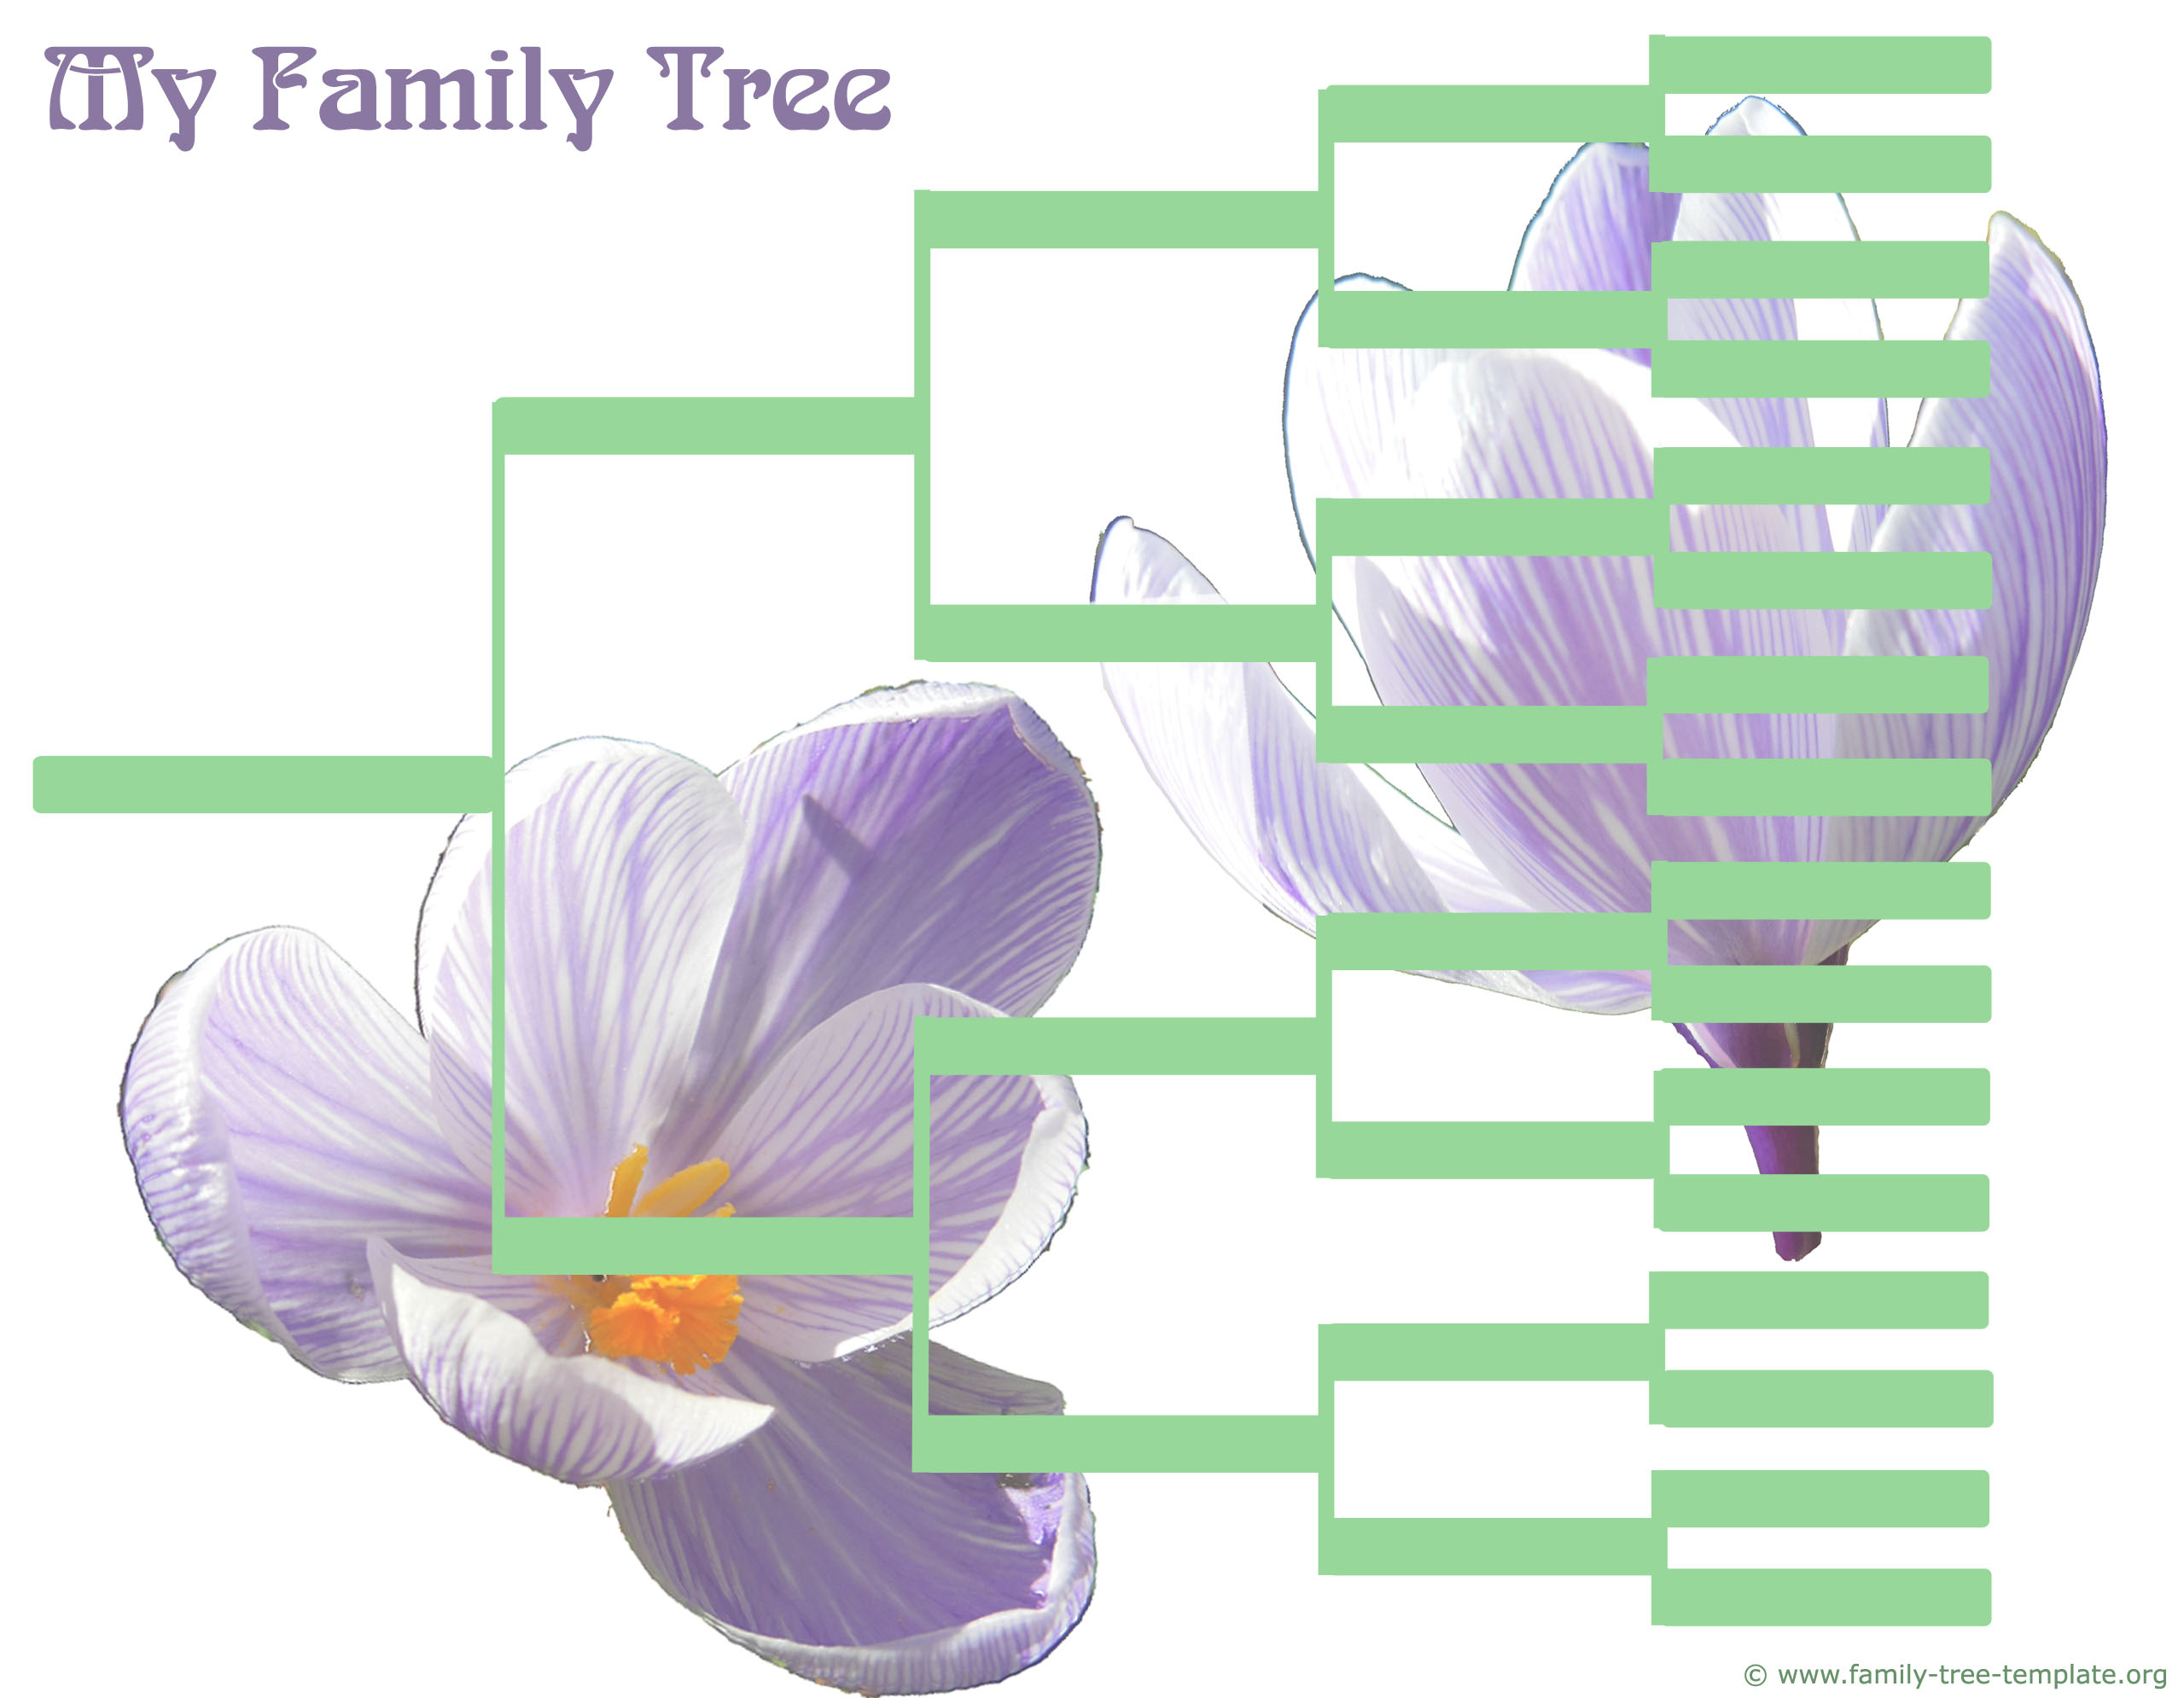 Large printable family tree chart going back 5 generations.